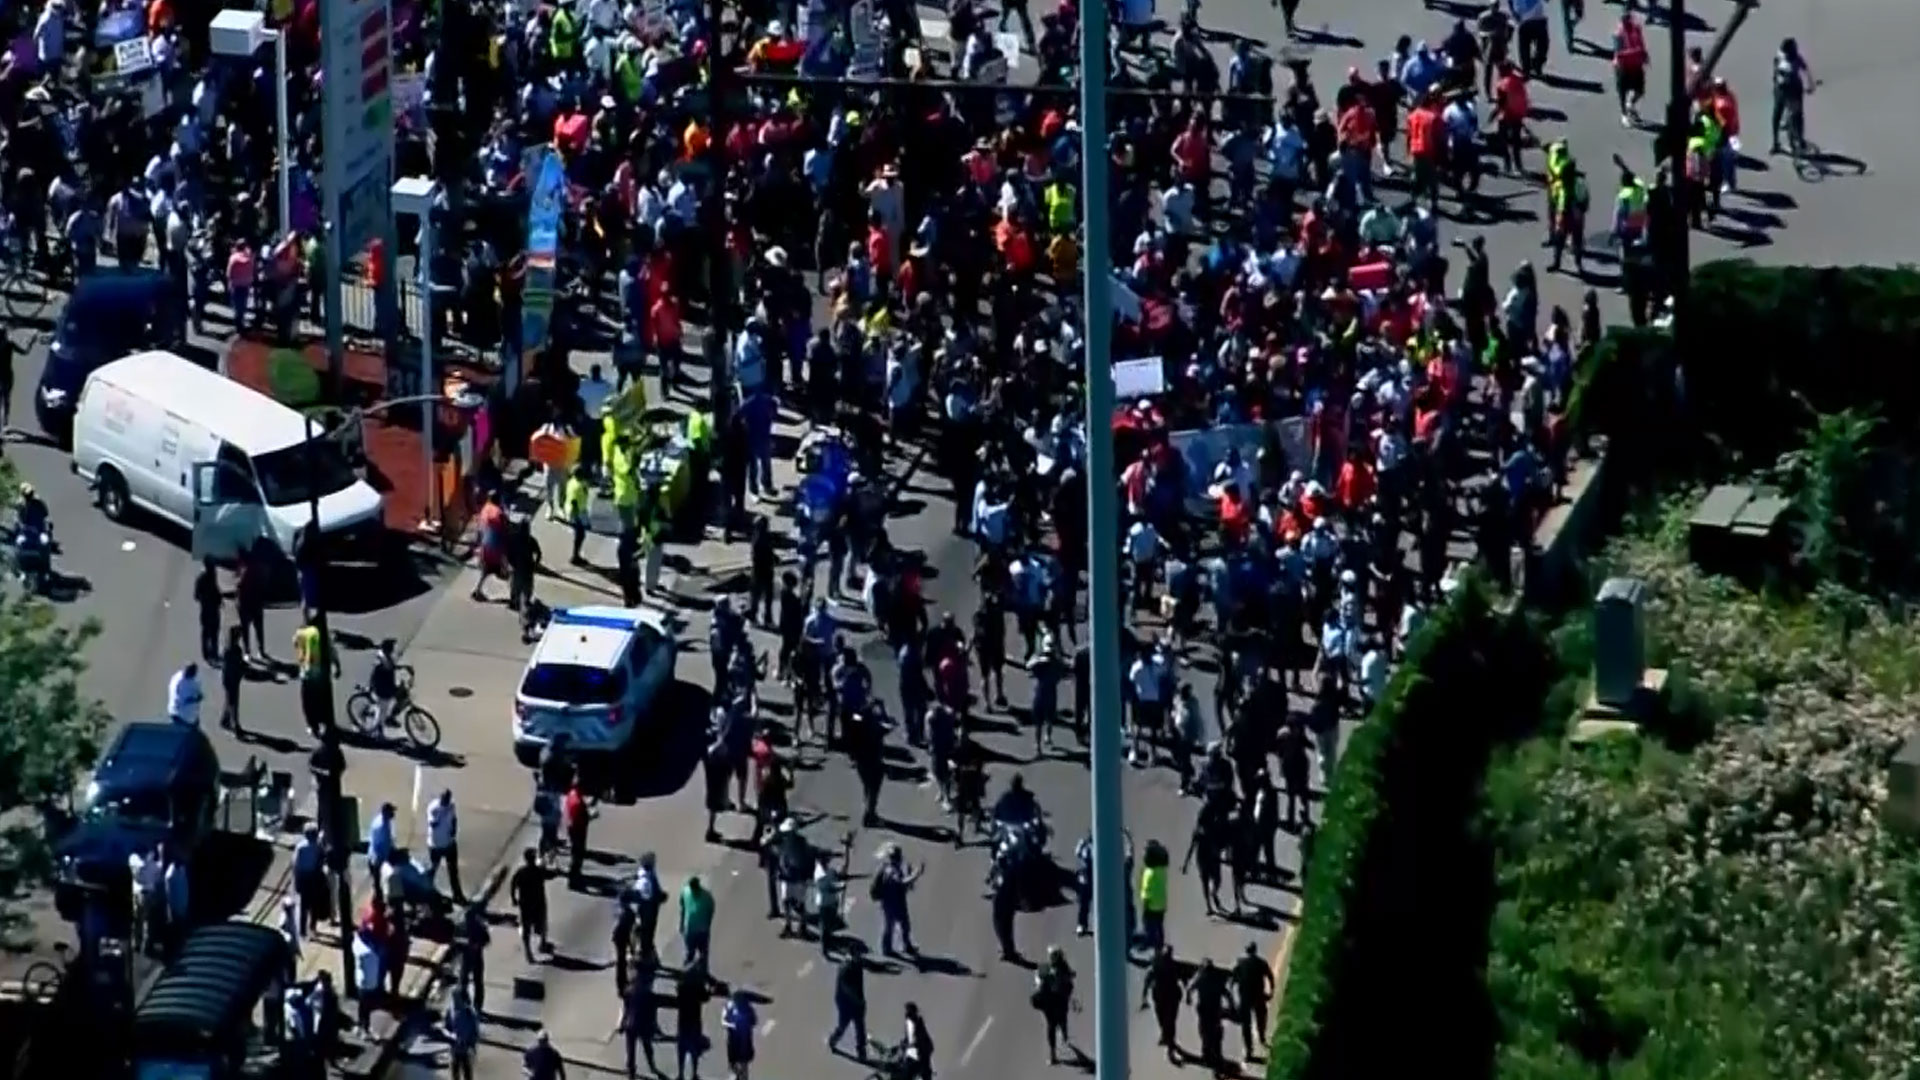 KELO Chicago Protest